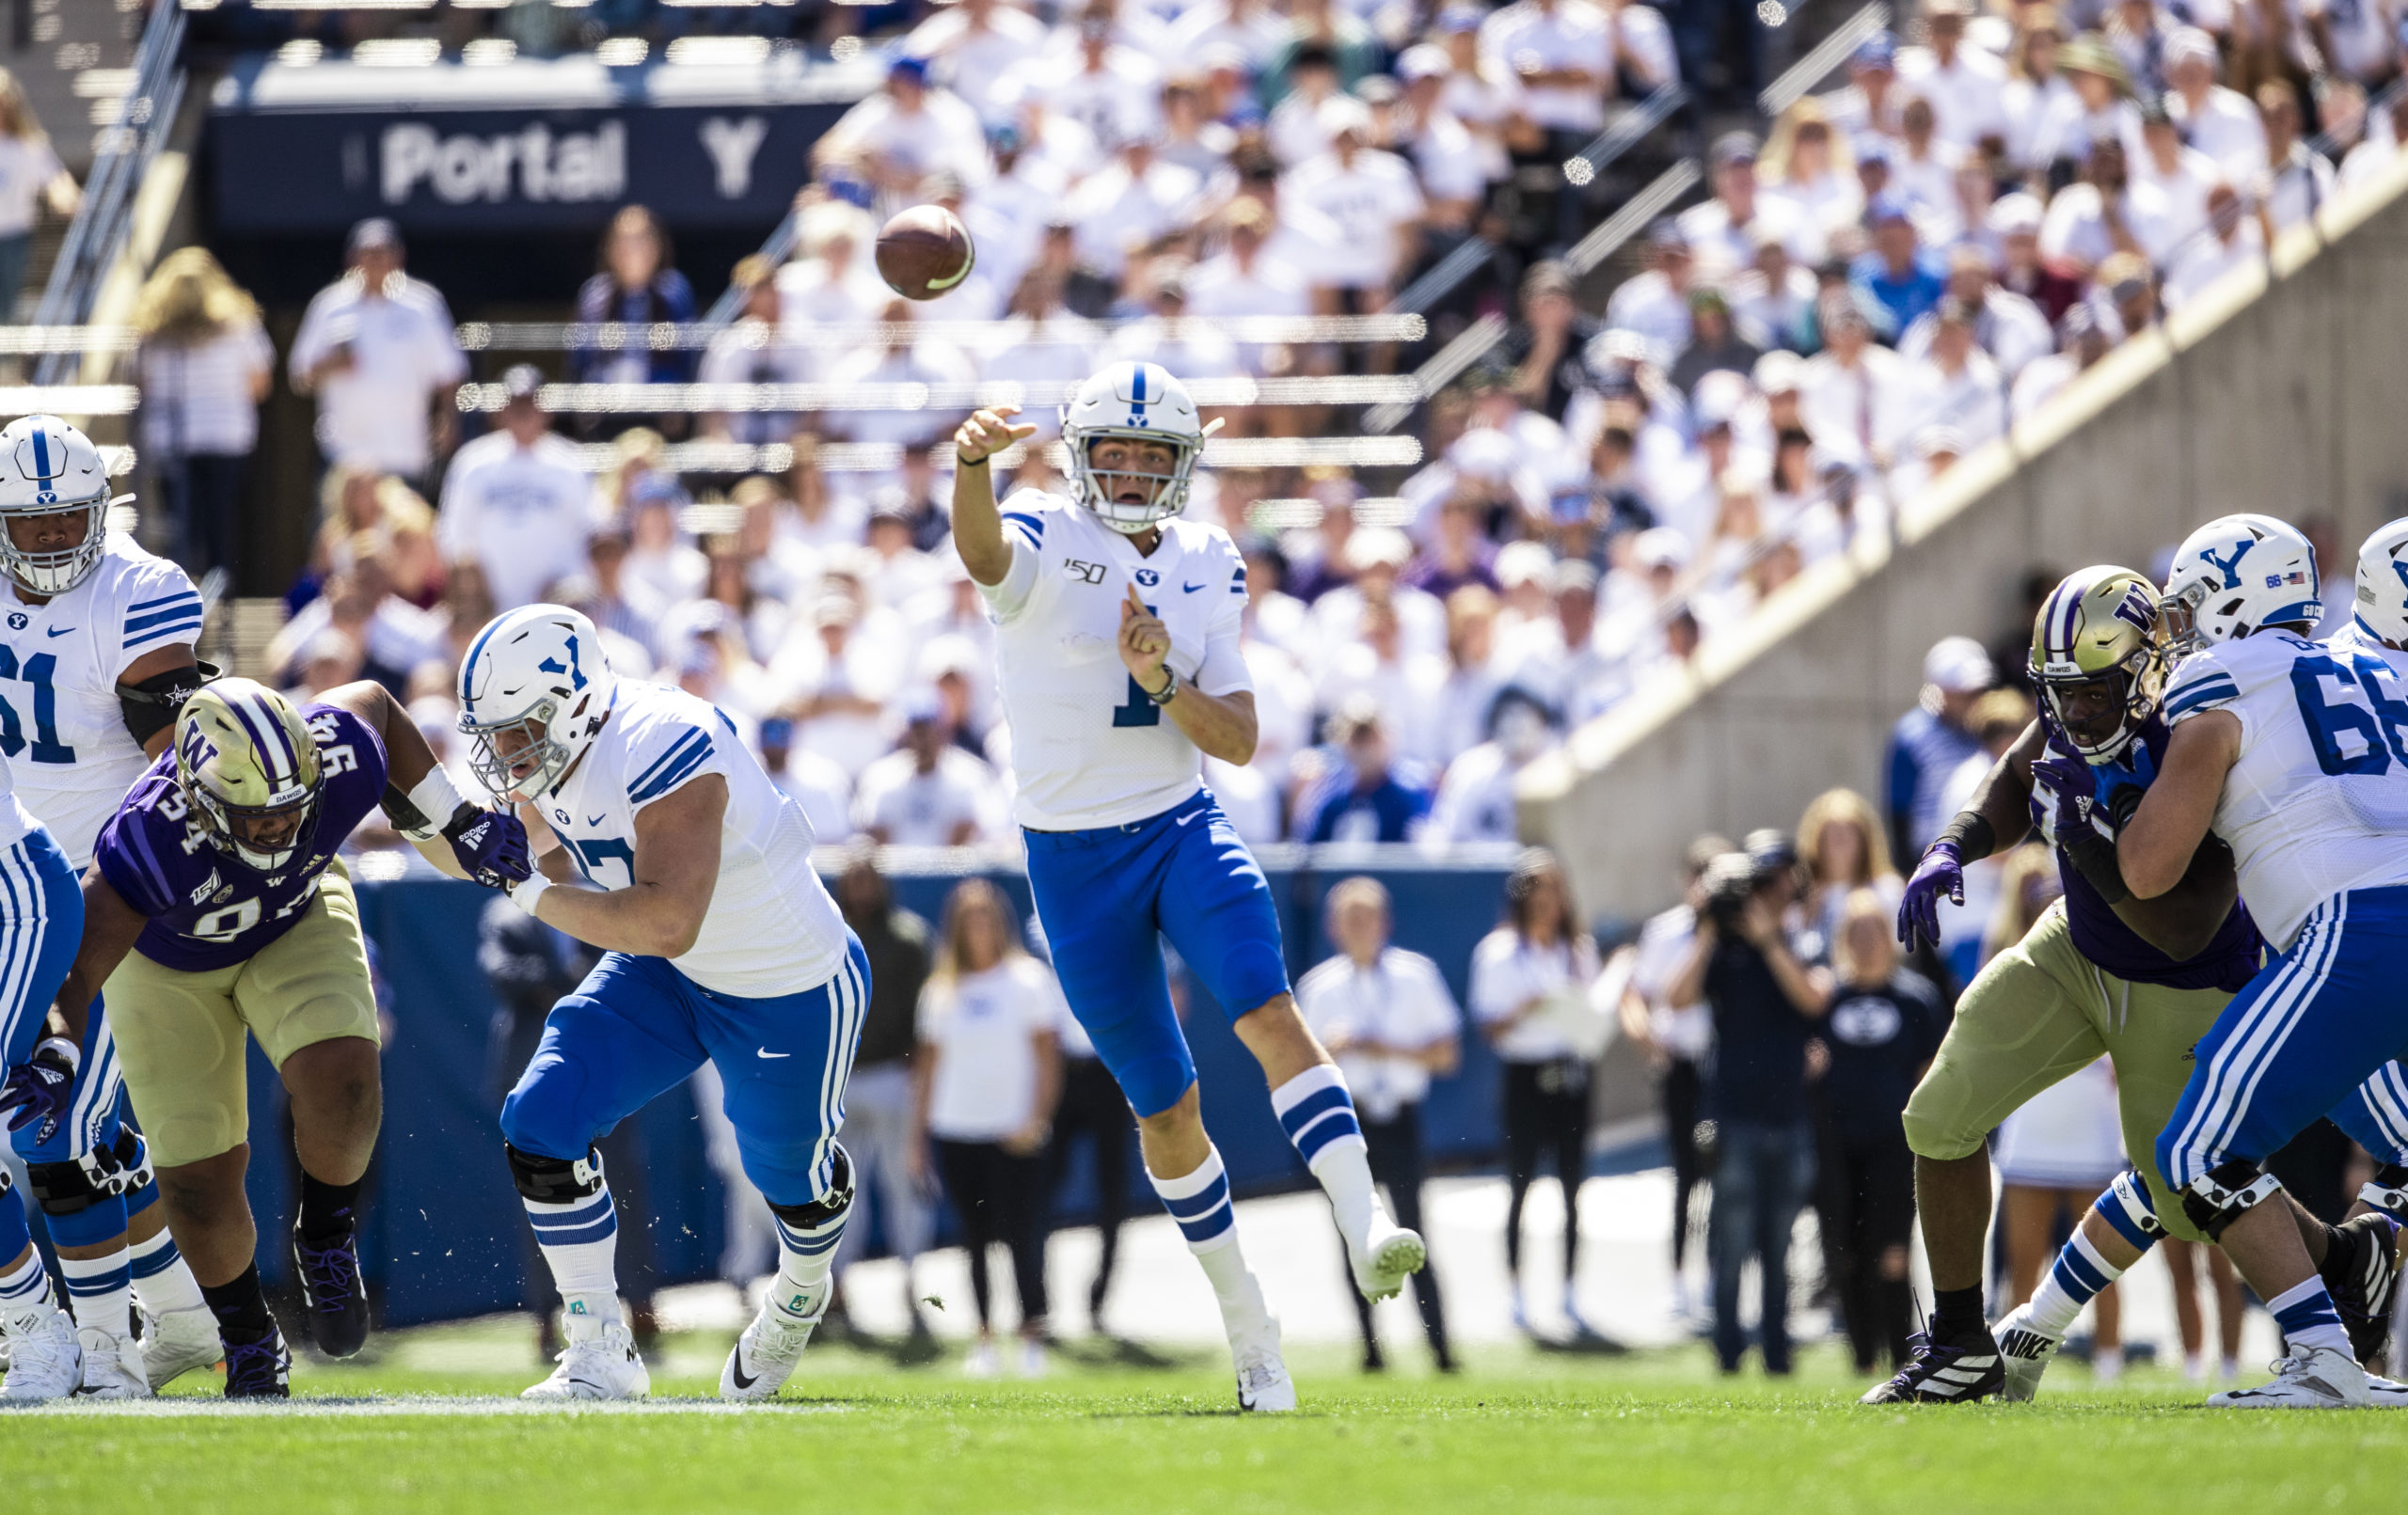 BYU Football Preview: How the Cougar offense will fare against a stout Navy defense